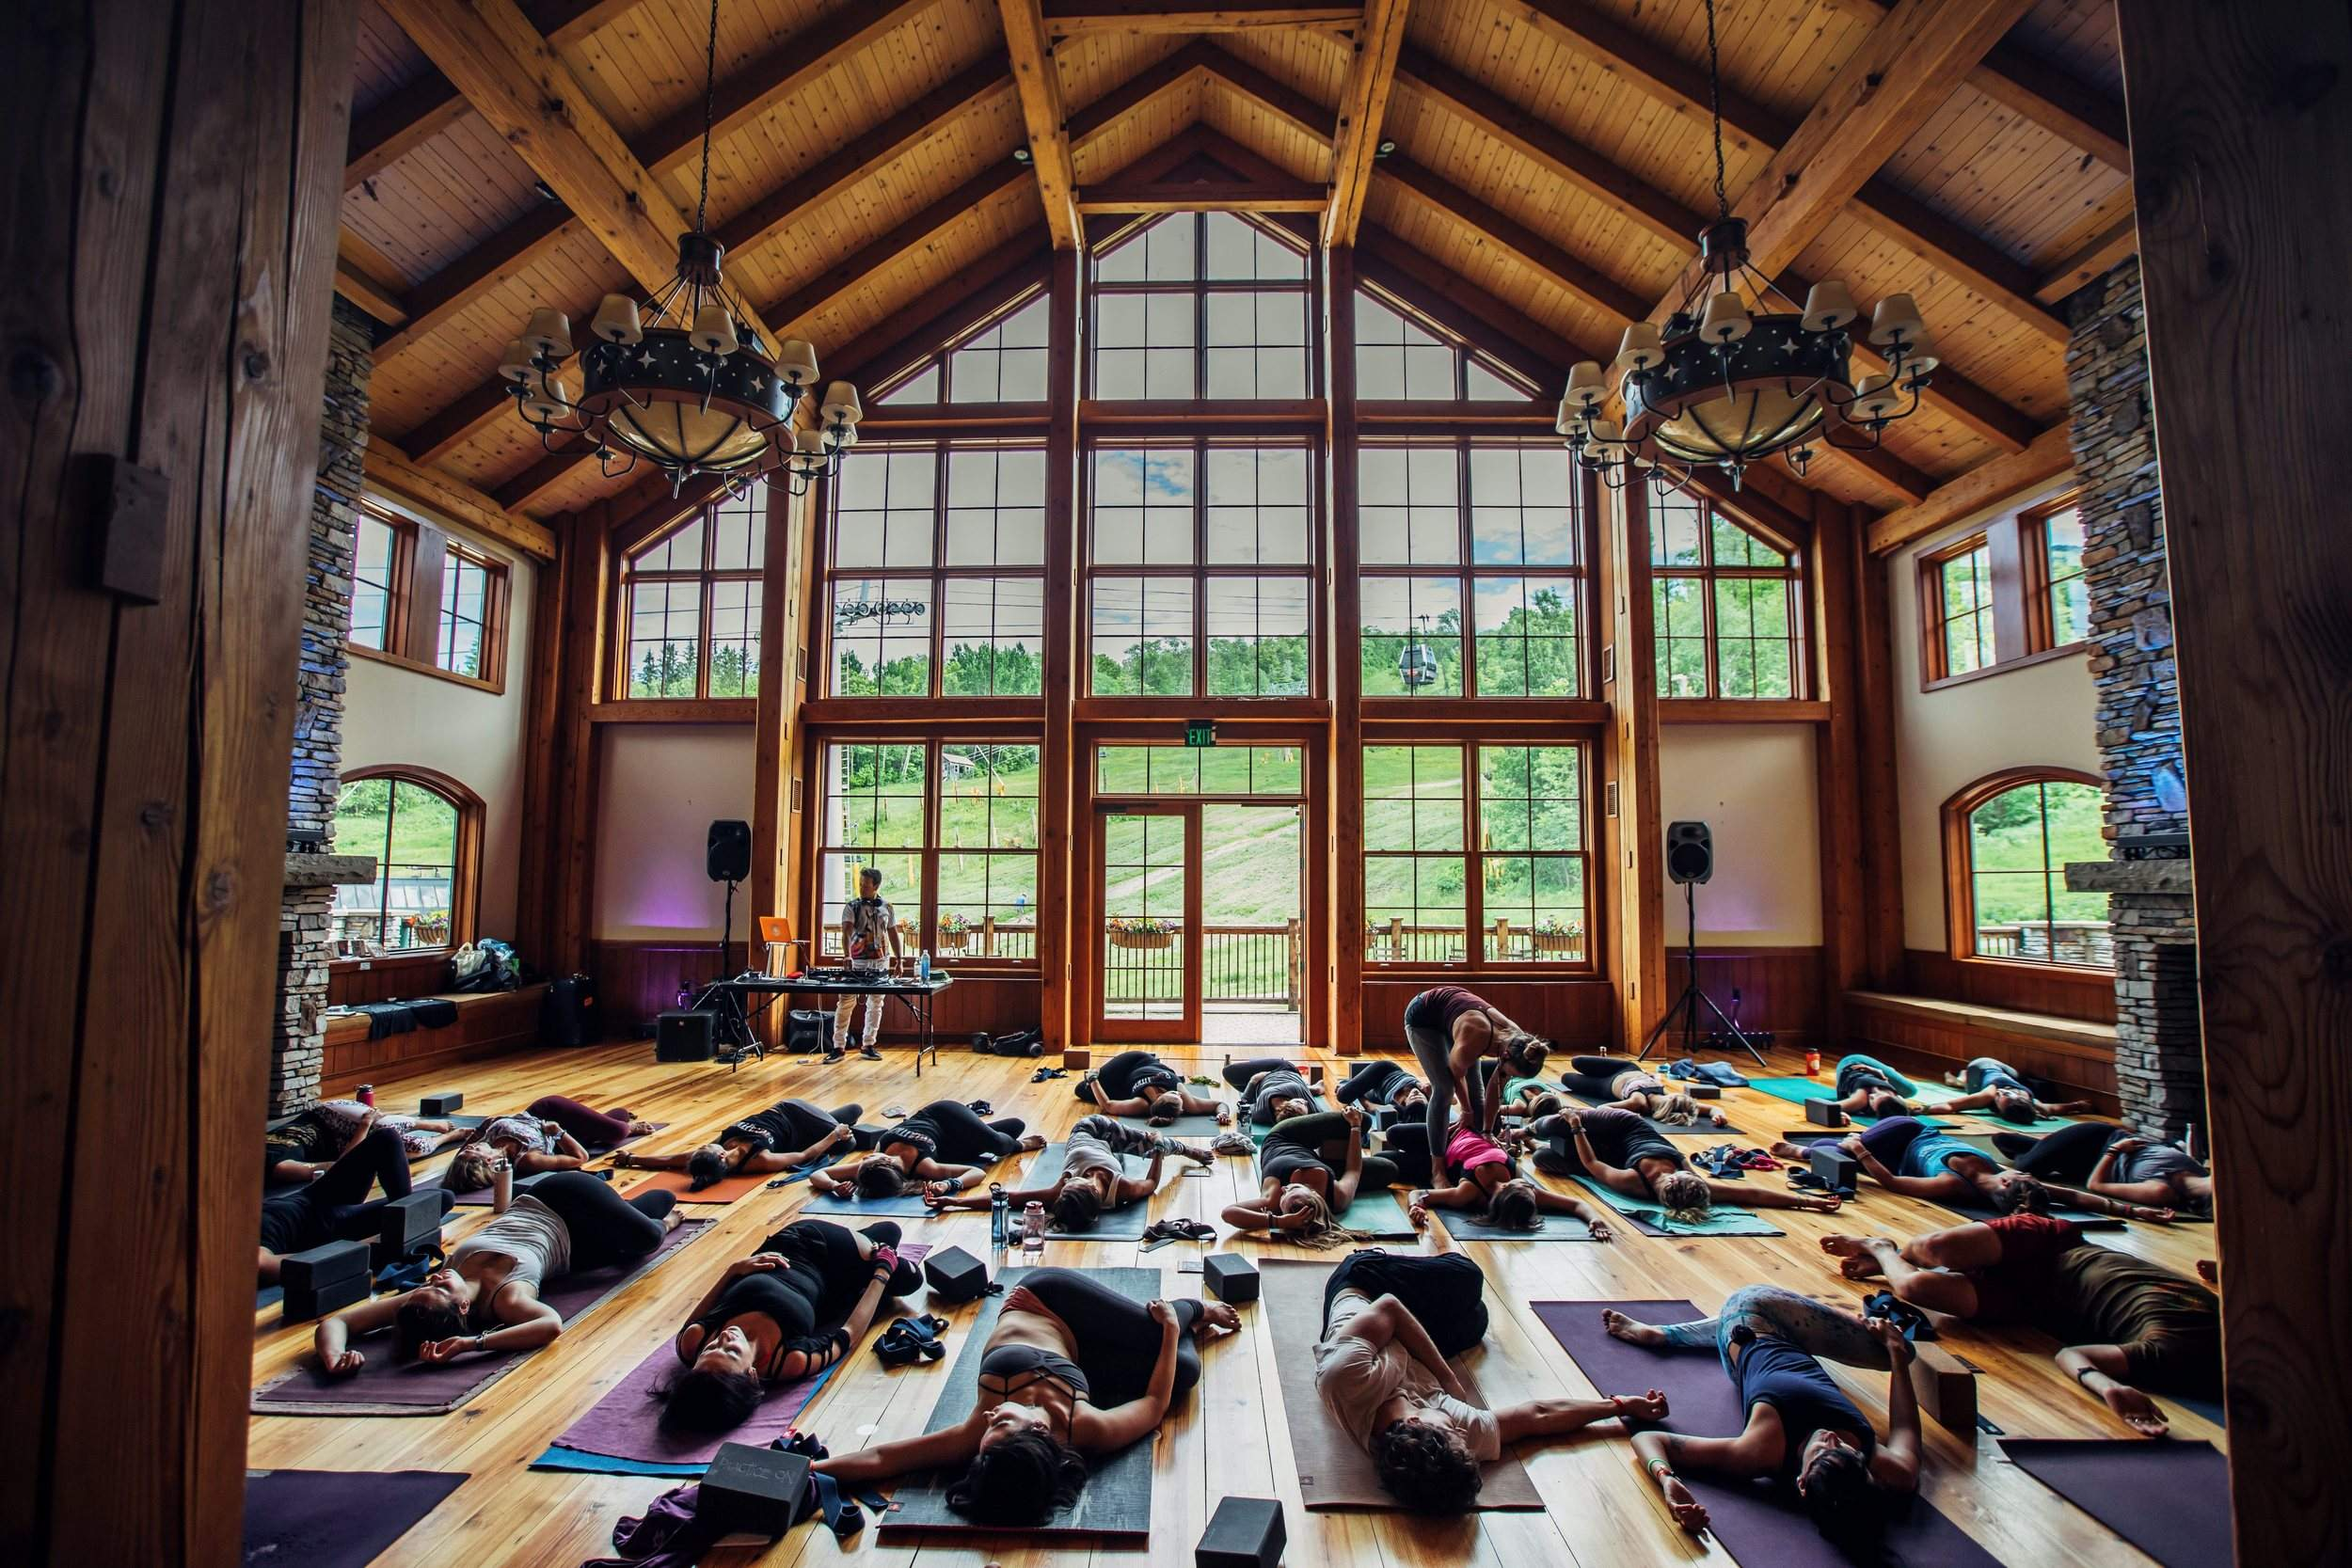 Participants Work Out During Wanderlust Stratton 2017 In Bondville, Vermont